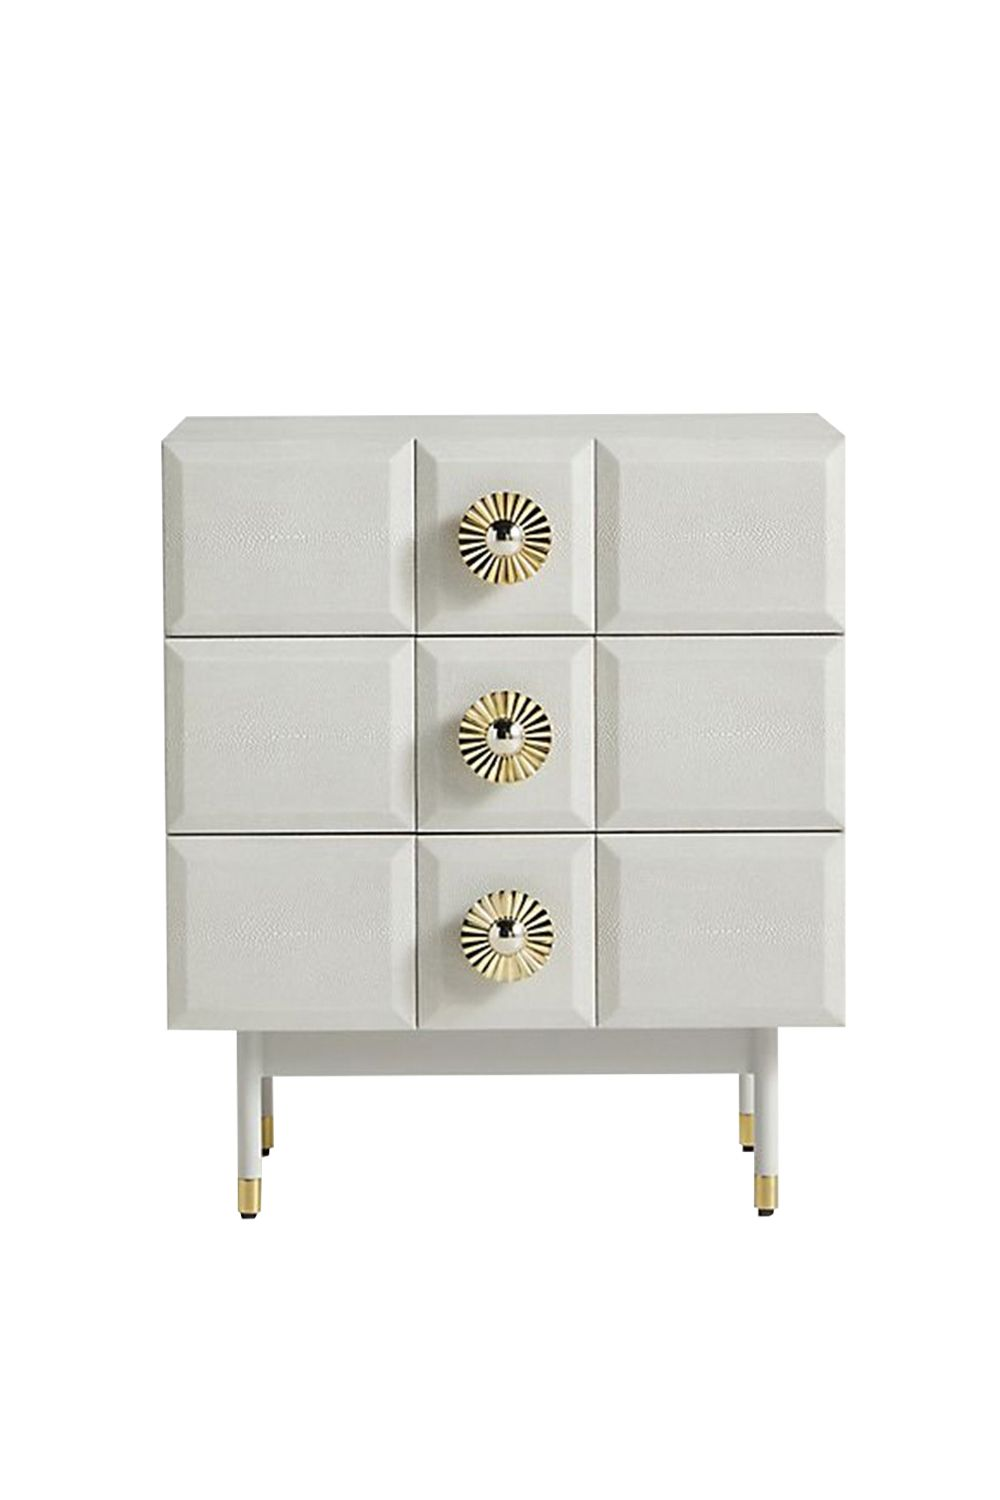 20 Modern Bedroom Nightstands To Buy Online Stylish